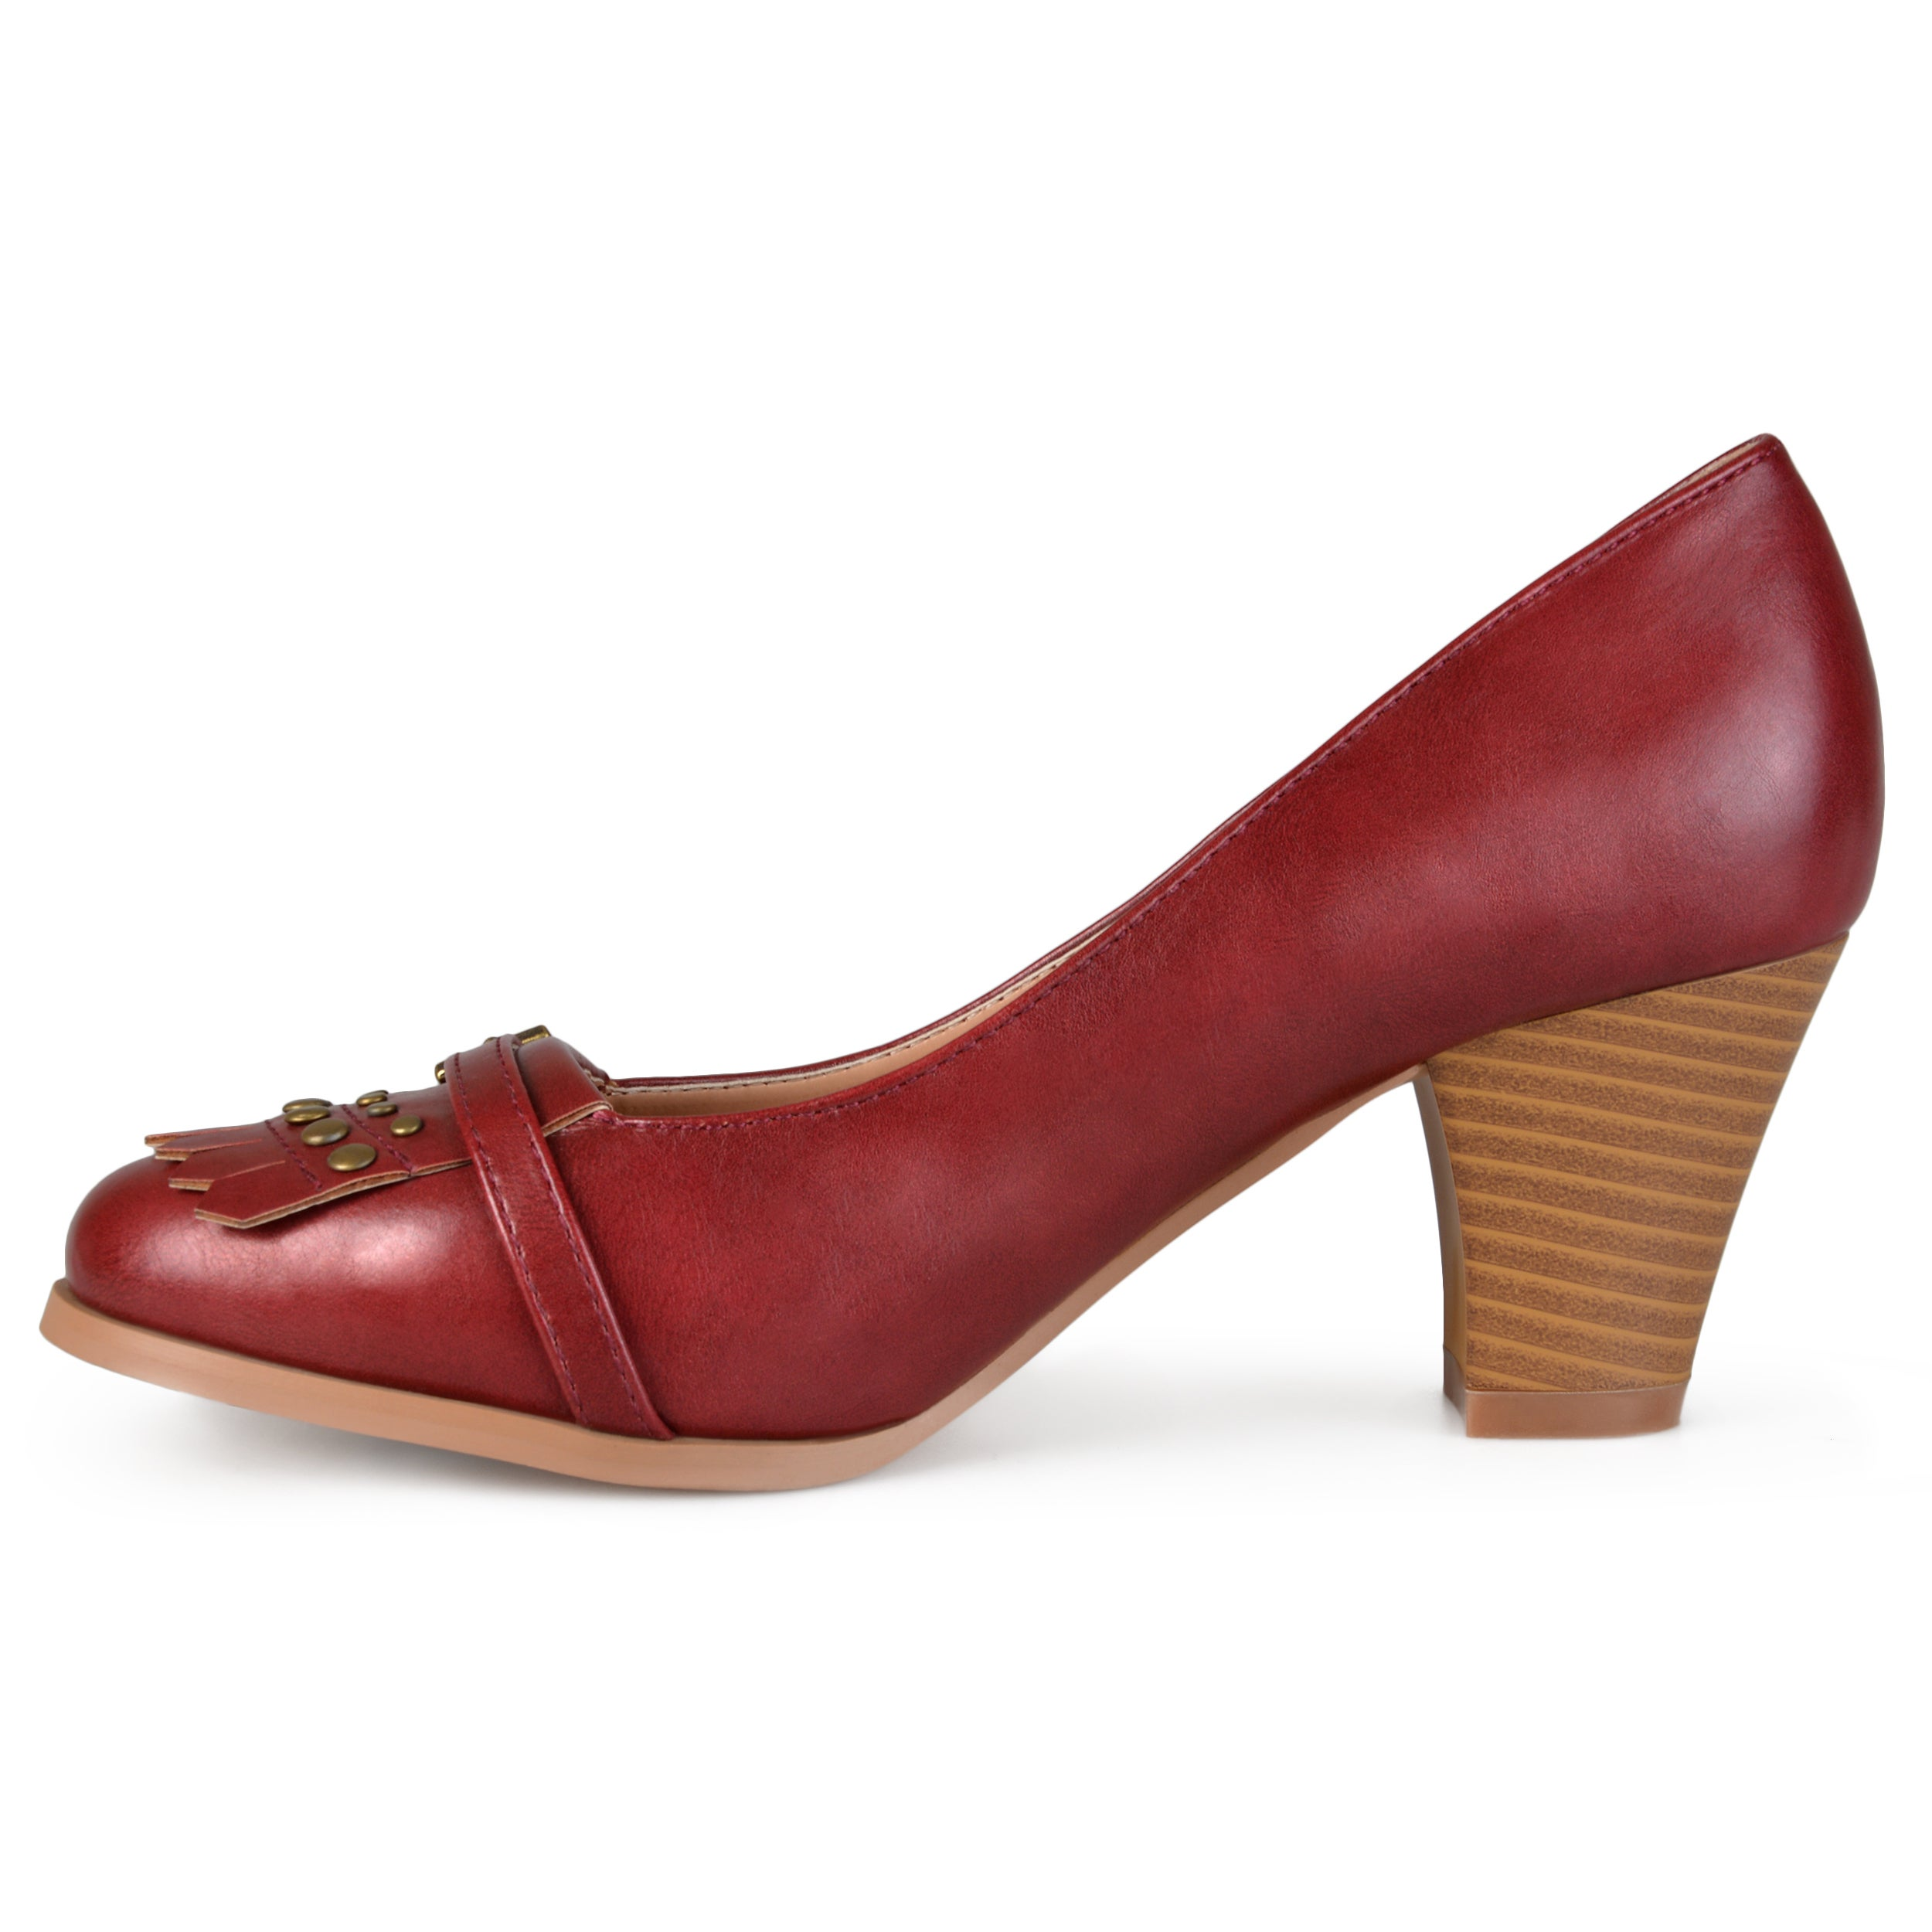 85bddb71a53 Shop Journee Collection Women s  Nora  Stacked Heel Loafer Pumps - Free  Shipping Today - Overstock - 10789838